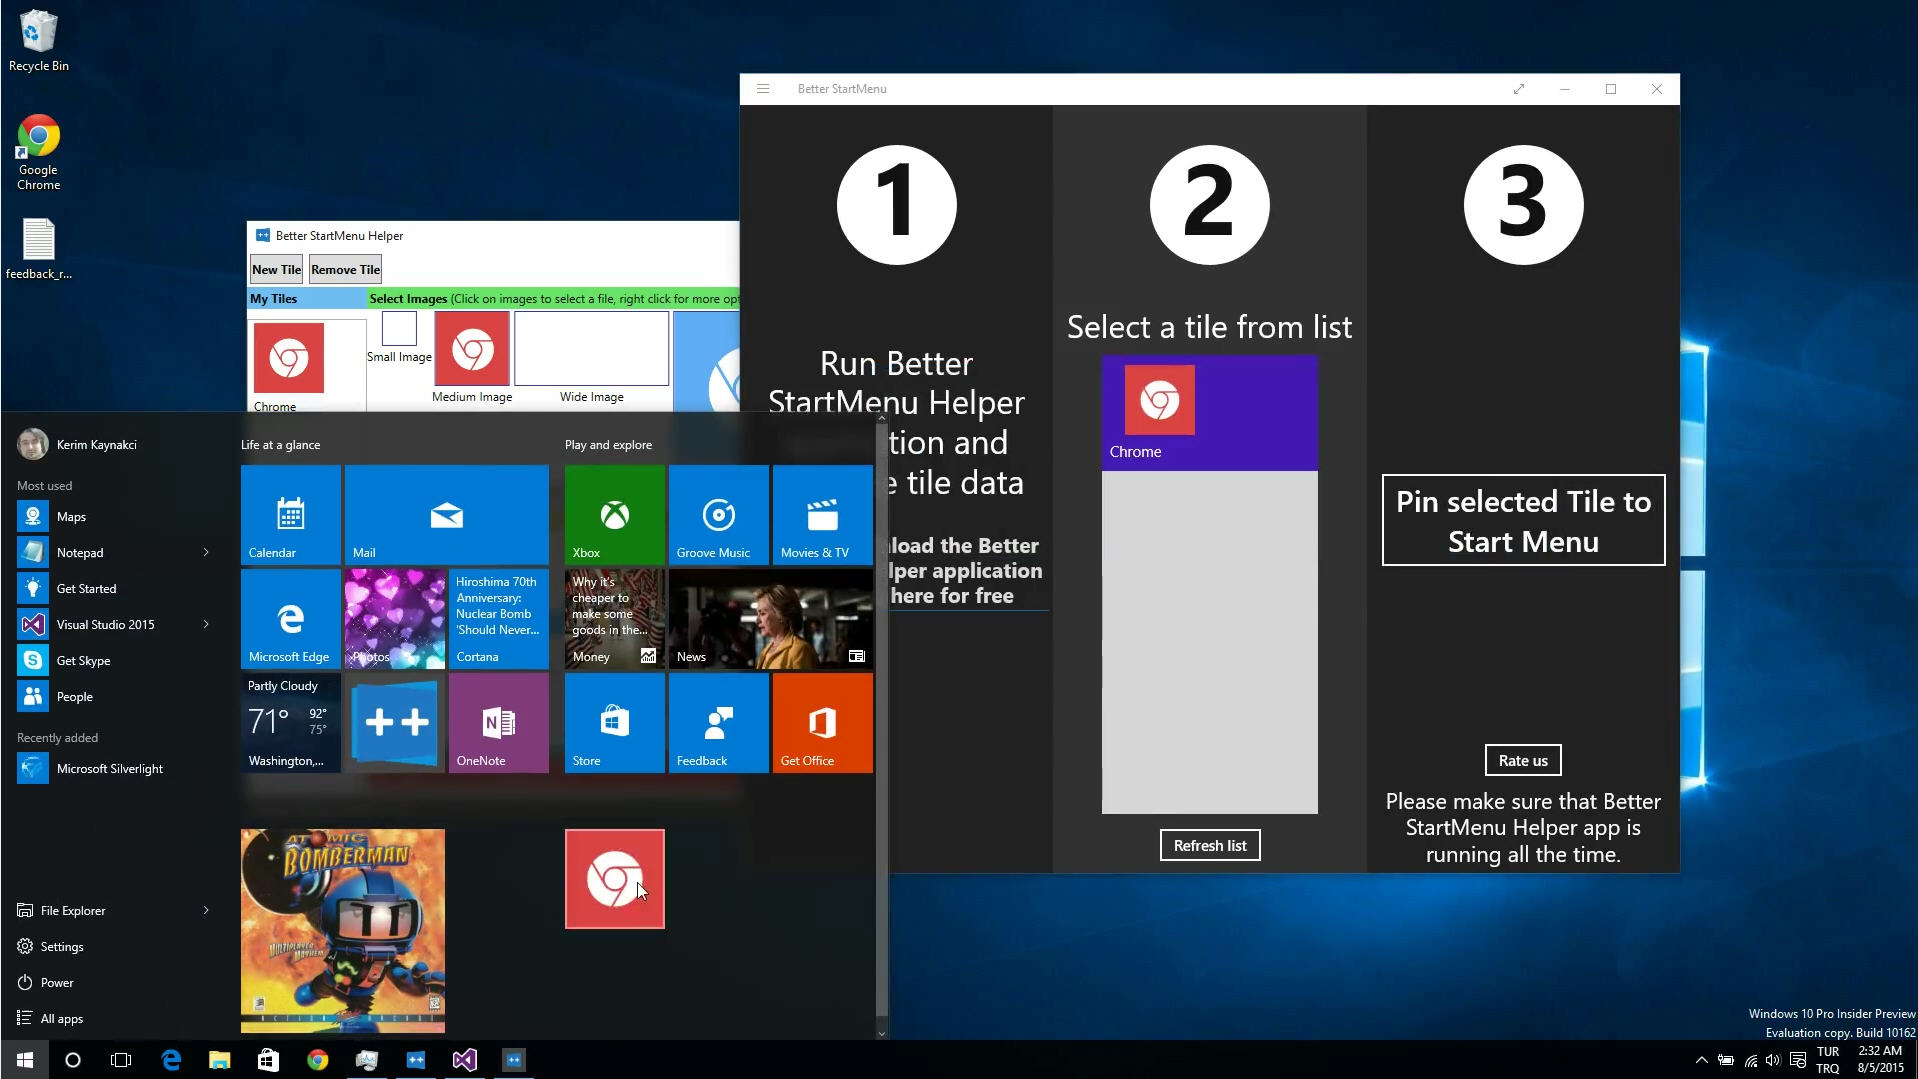 Customize Windows 10 39 S Start Menu With These Third Party Apps